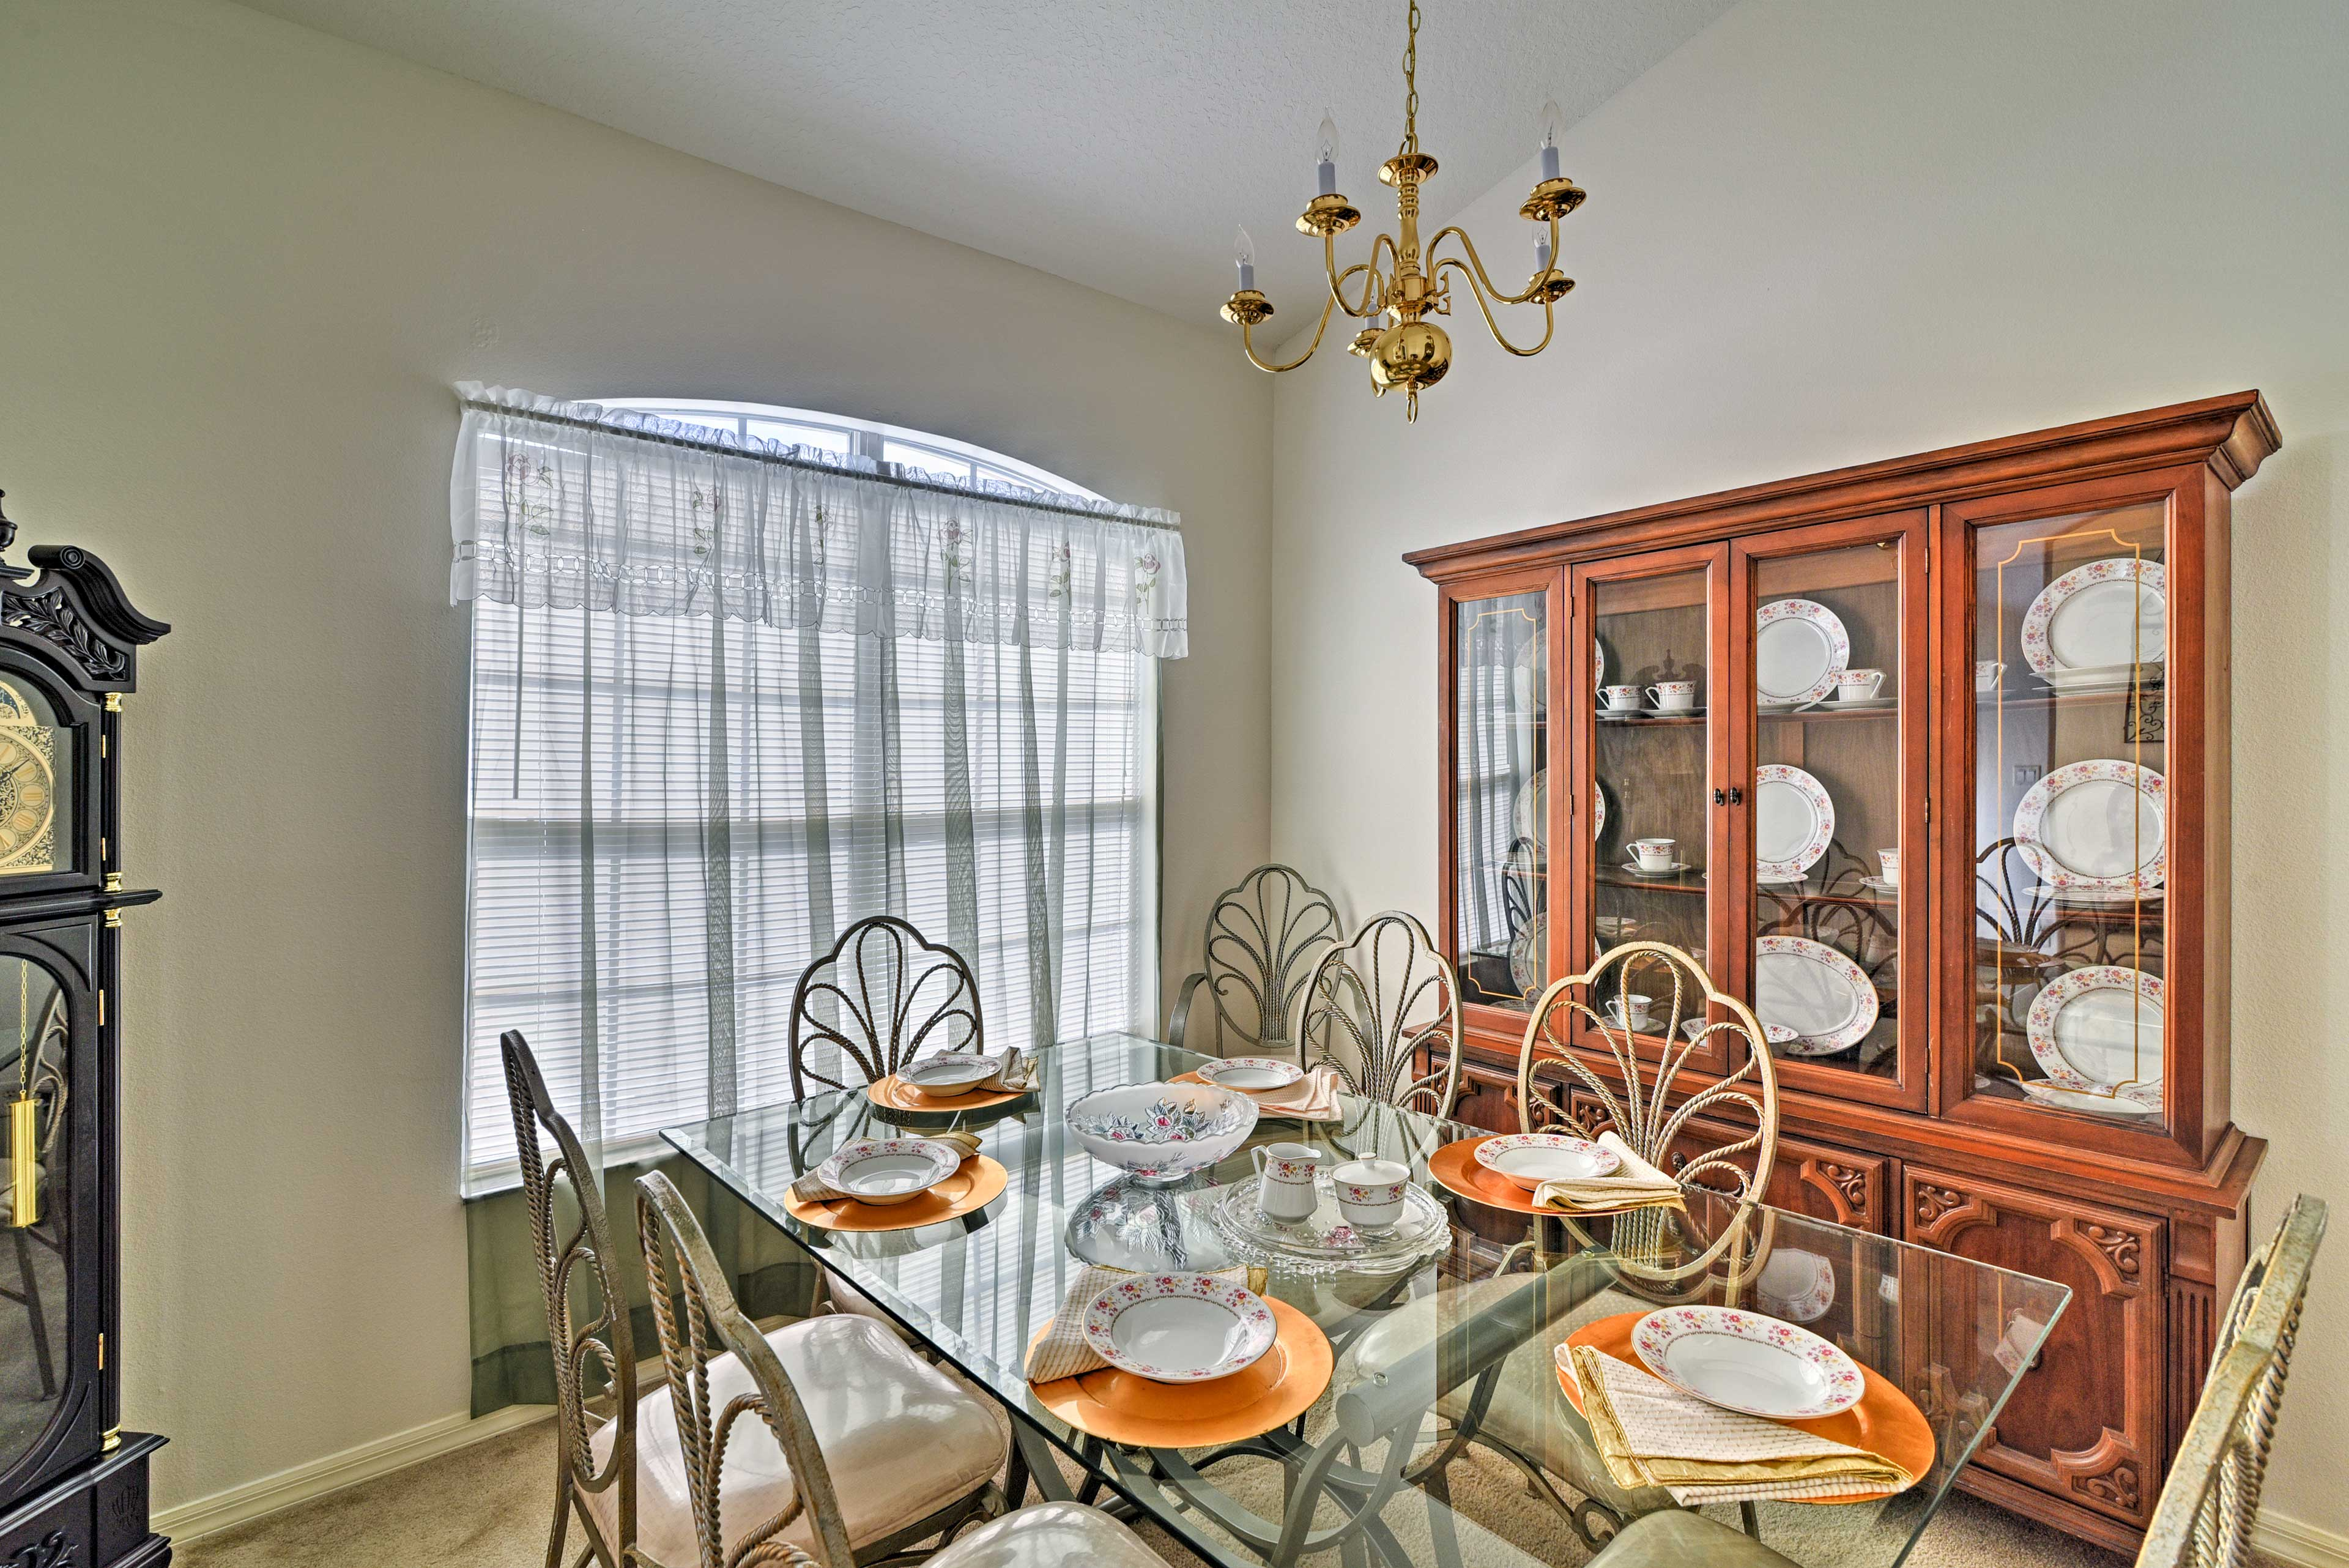 A glass-topped table completes this formal dining room.